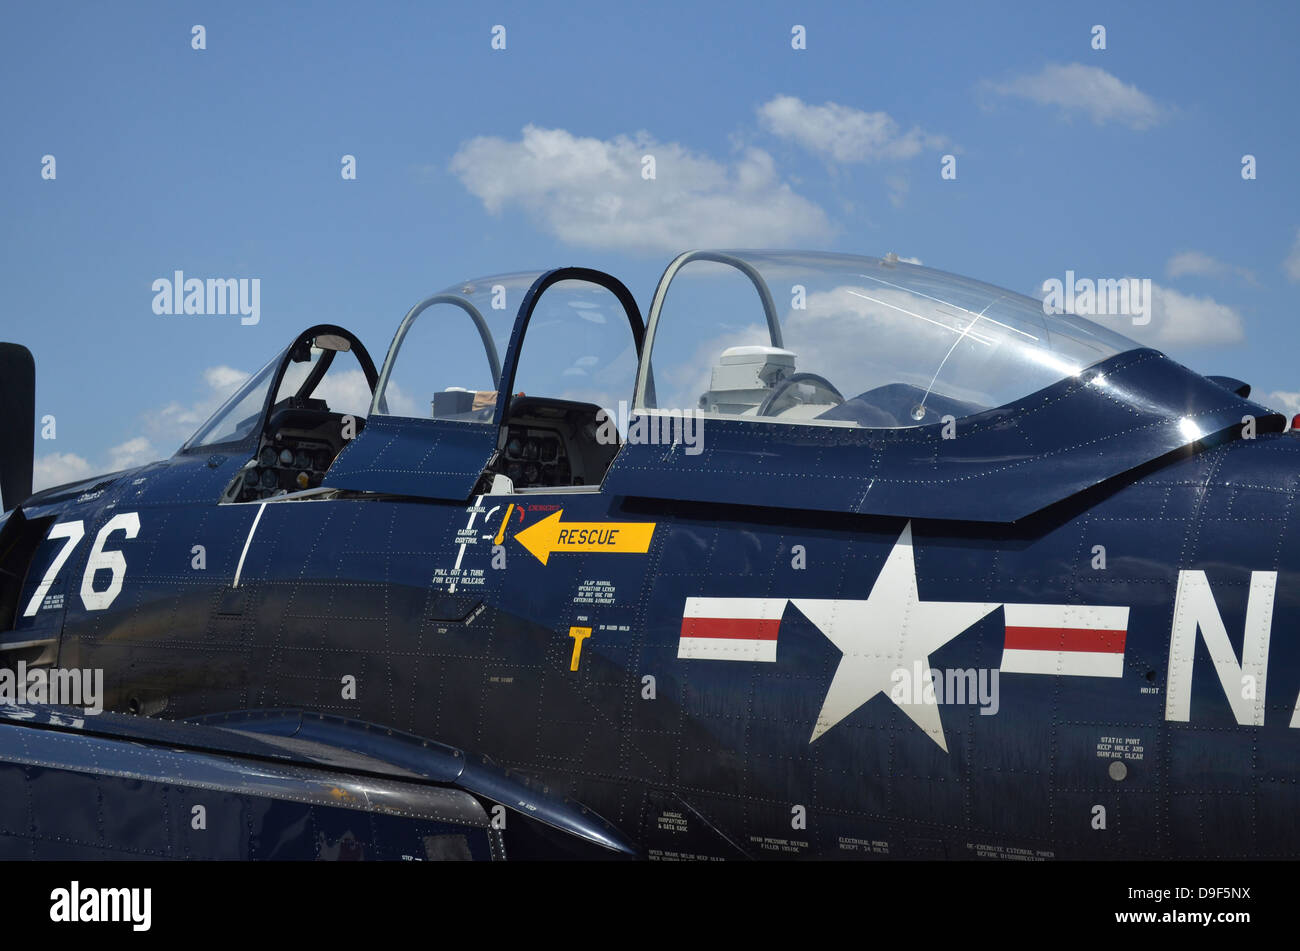 Close-up of the cockpit of a T-28 Trojan aircraft. - Stock Image